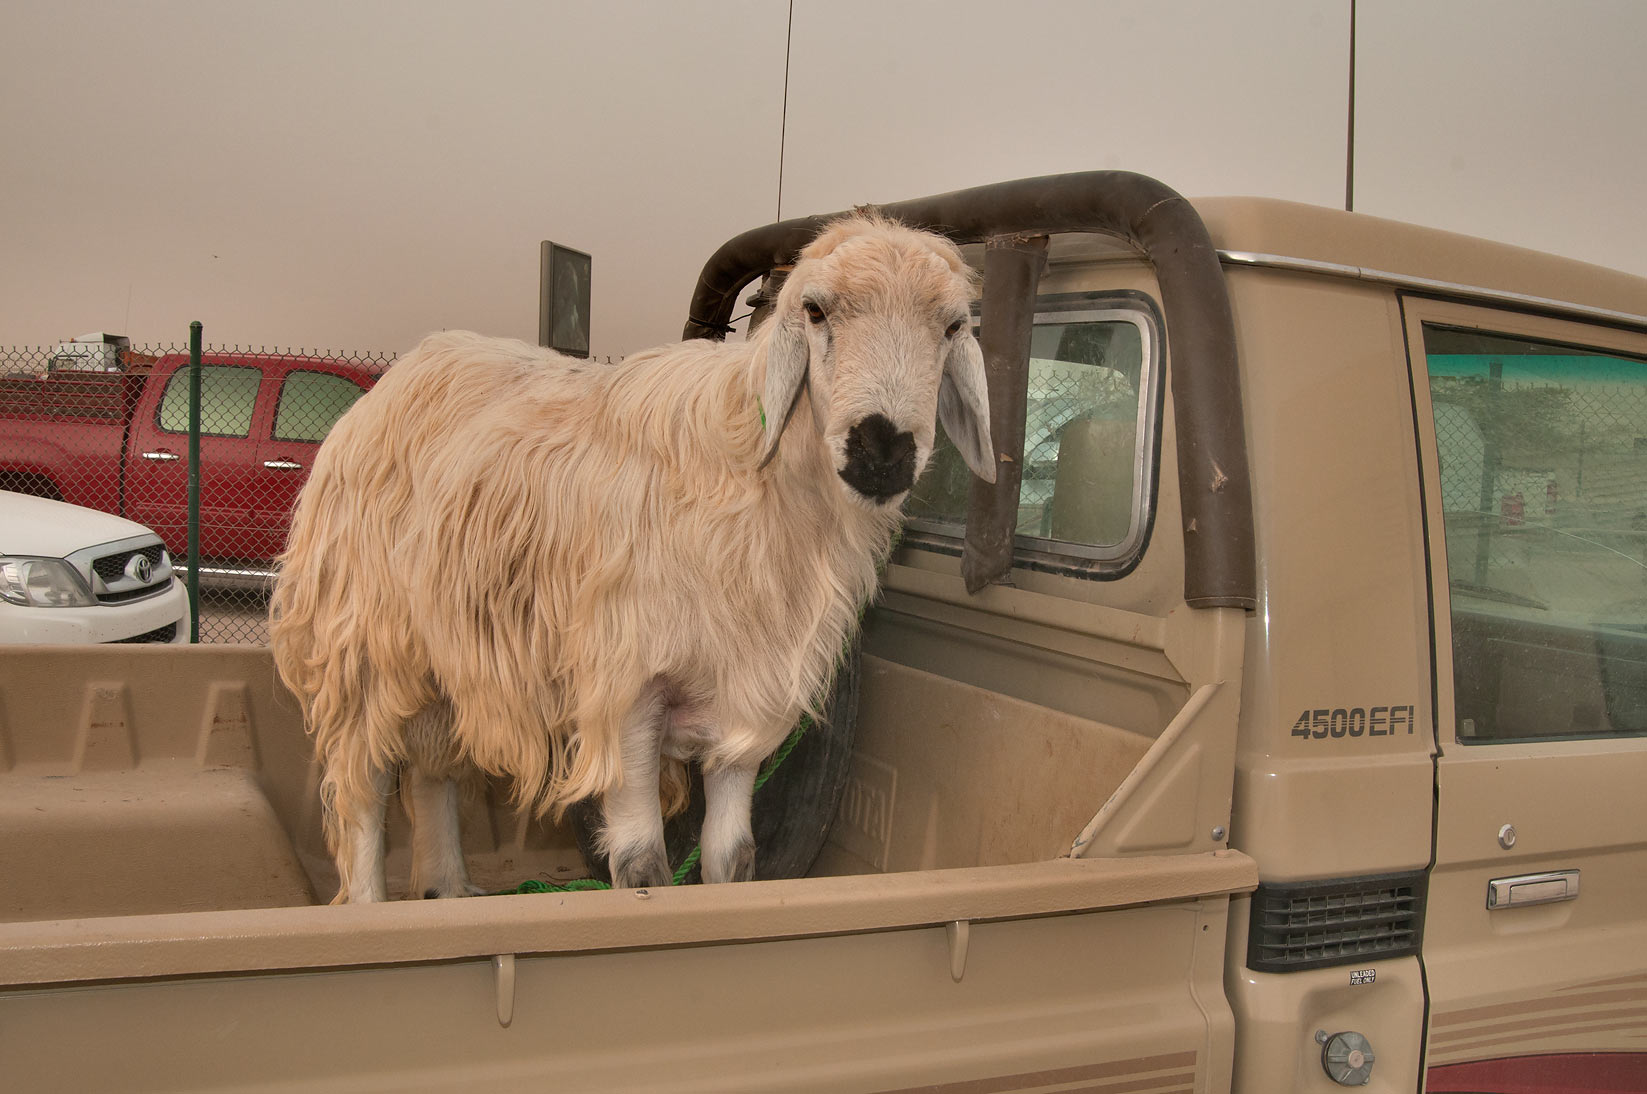 Goat standing in a truck in Sheep Market, Wholesale Markets area. Doha, Qatar